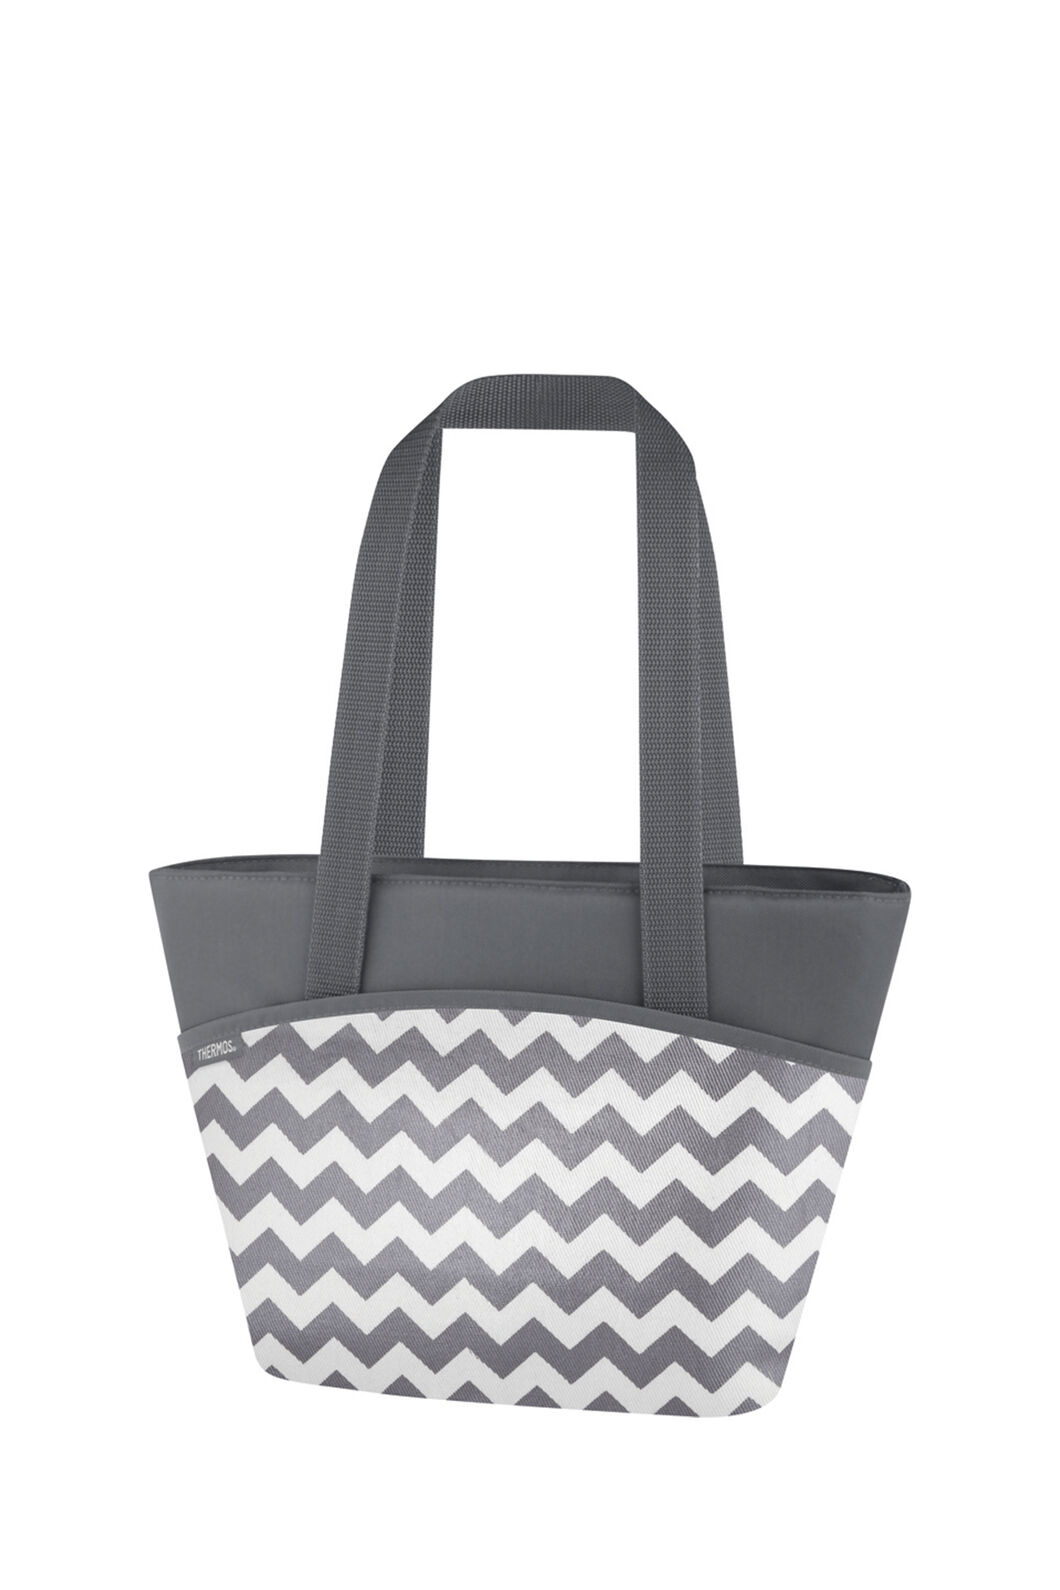 Thermos Raya Lunch Tote 9 Can Soft Cooler, None, hi-res